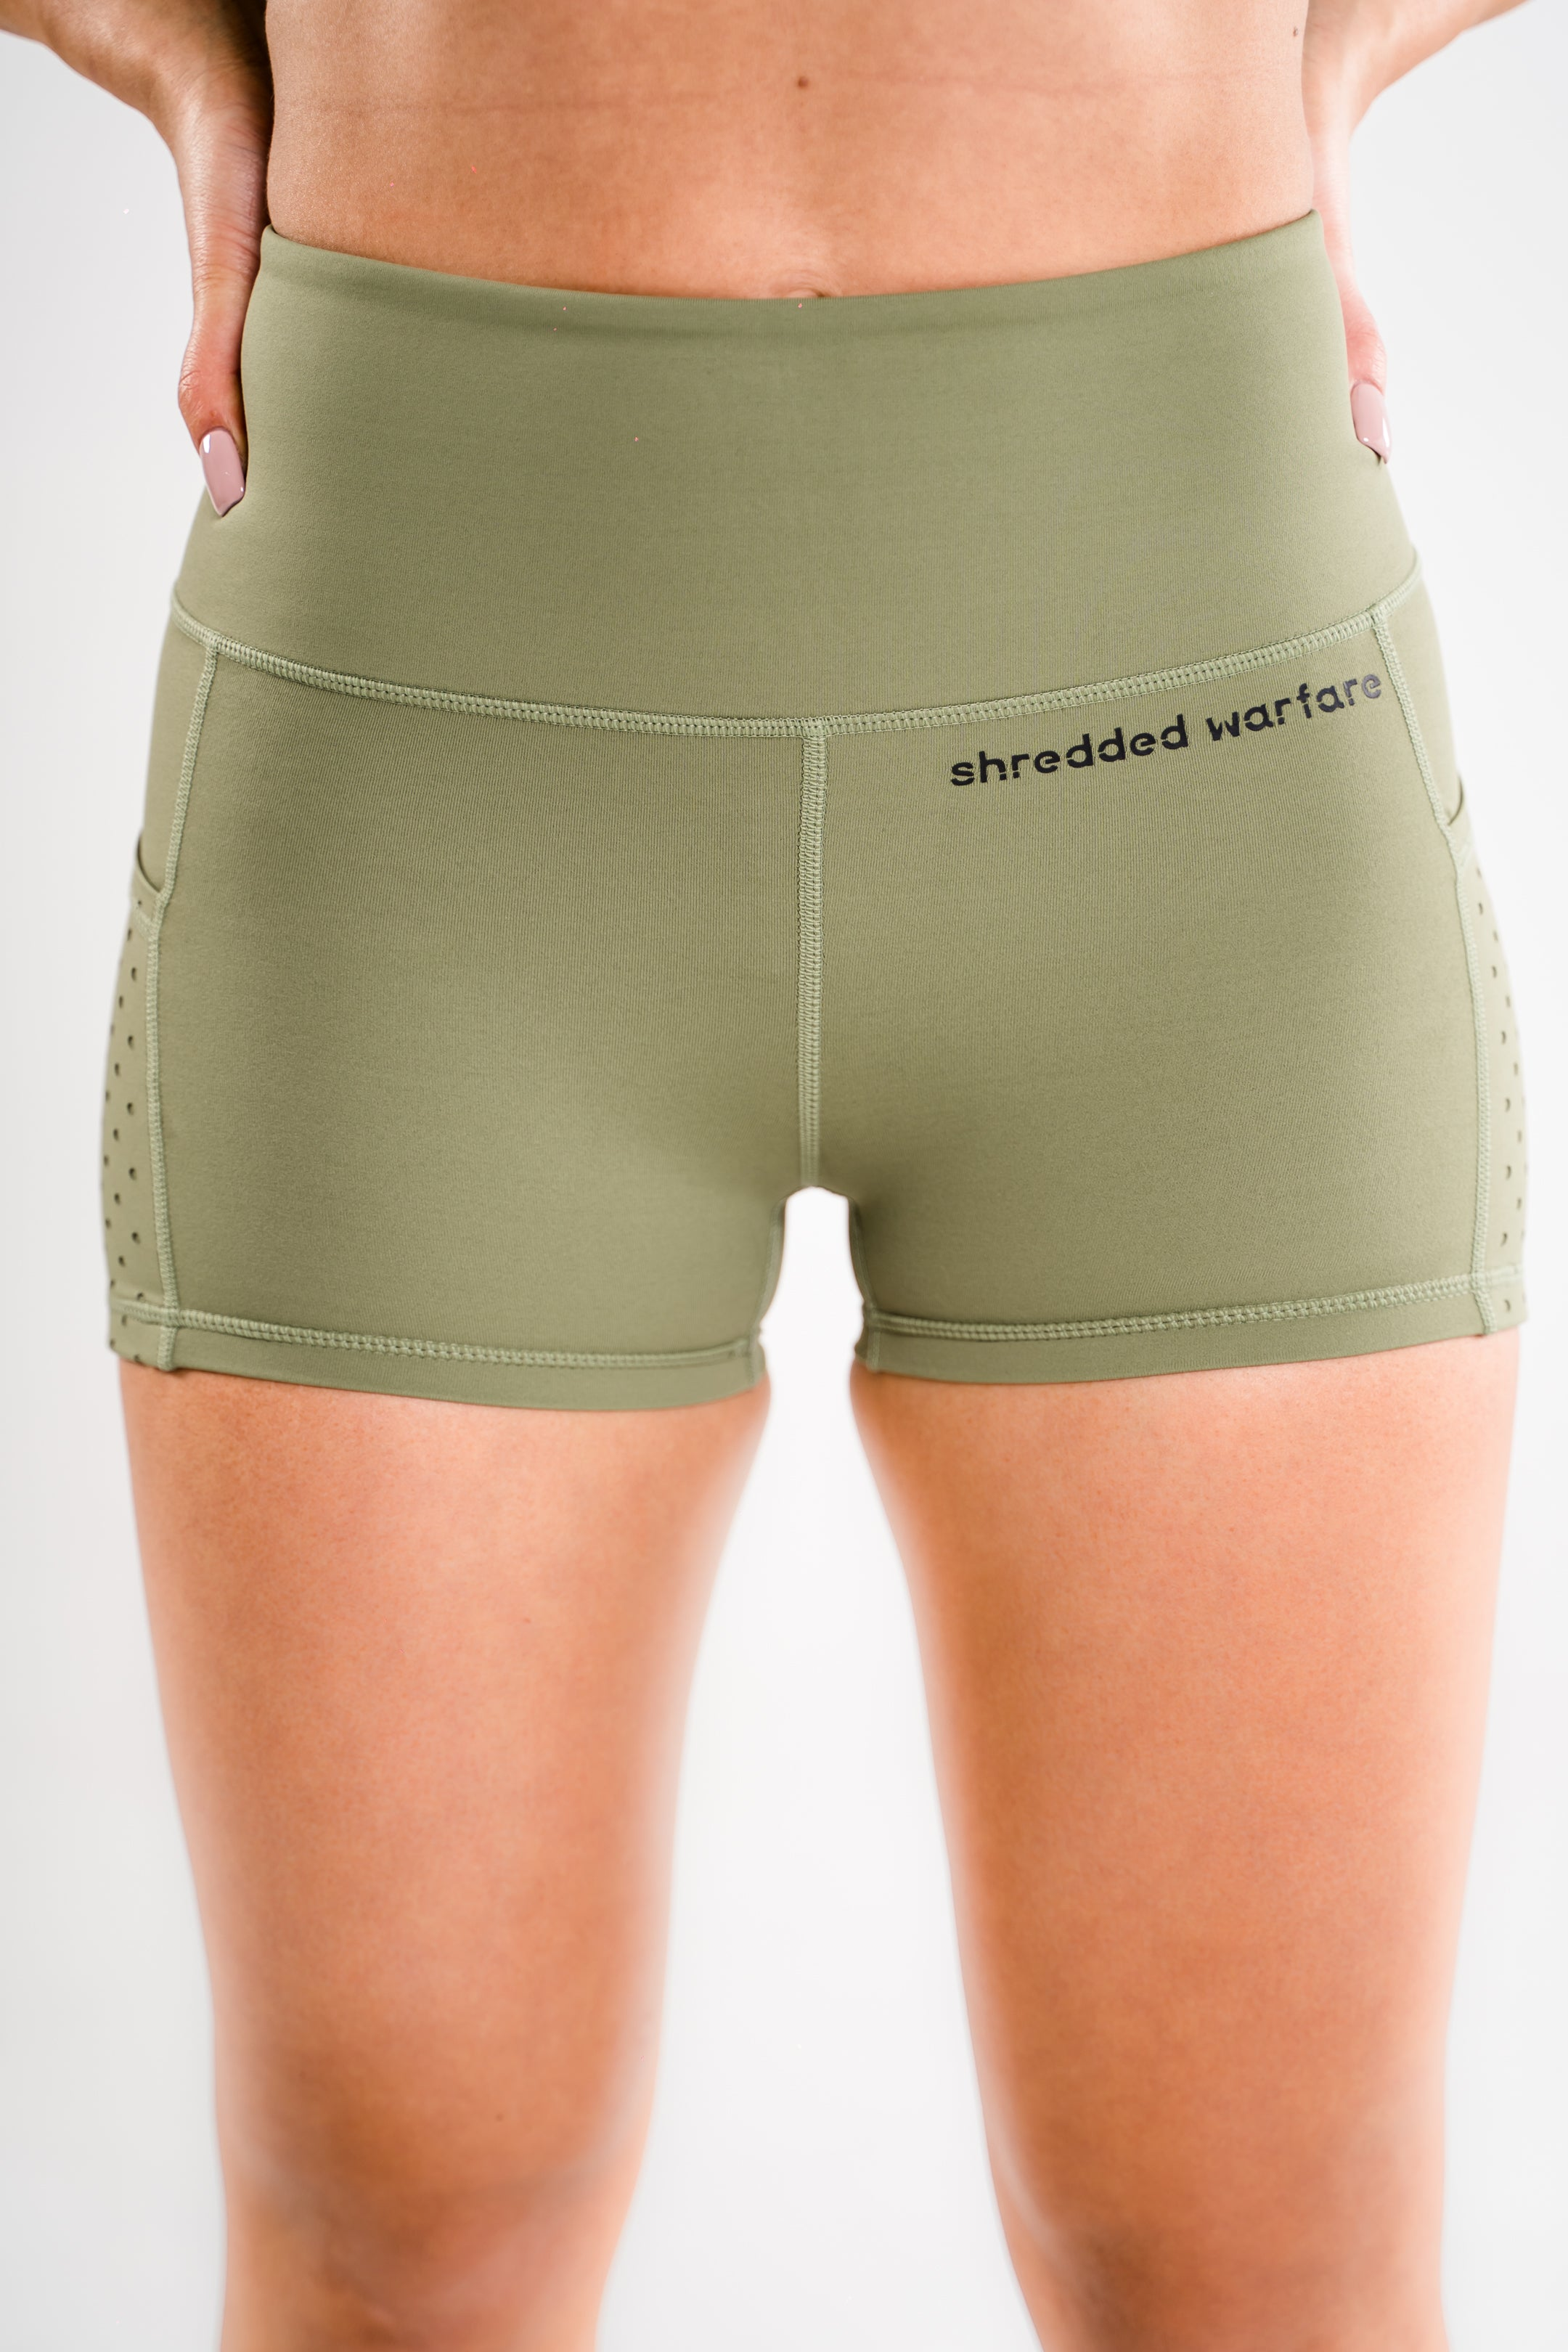 Ladies-OG-Training-Shorts-Khaki-Green-Front-Shredded-Warfare